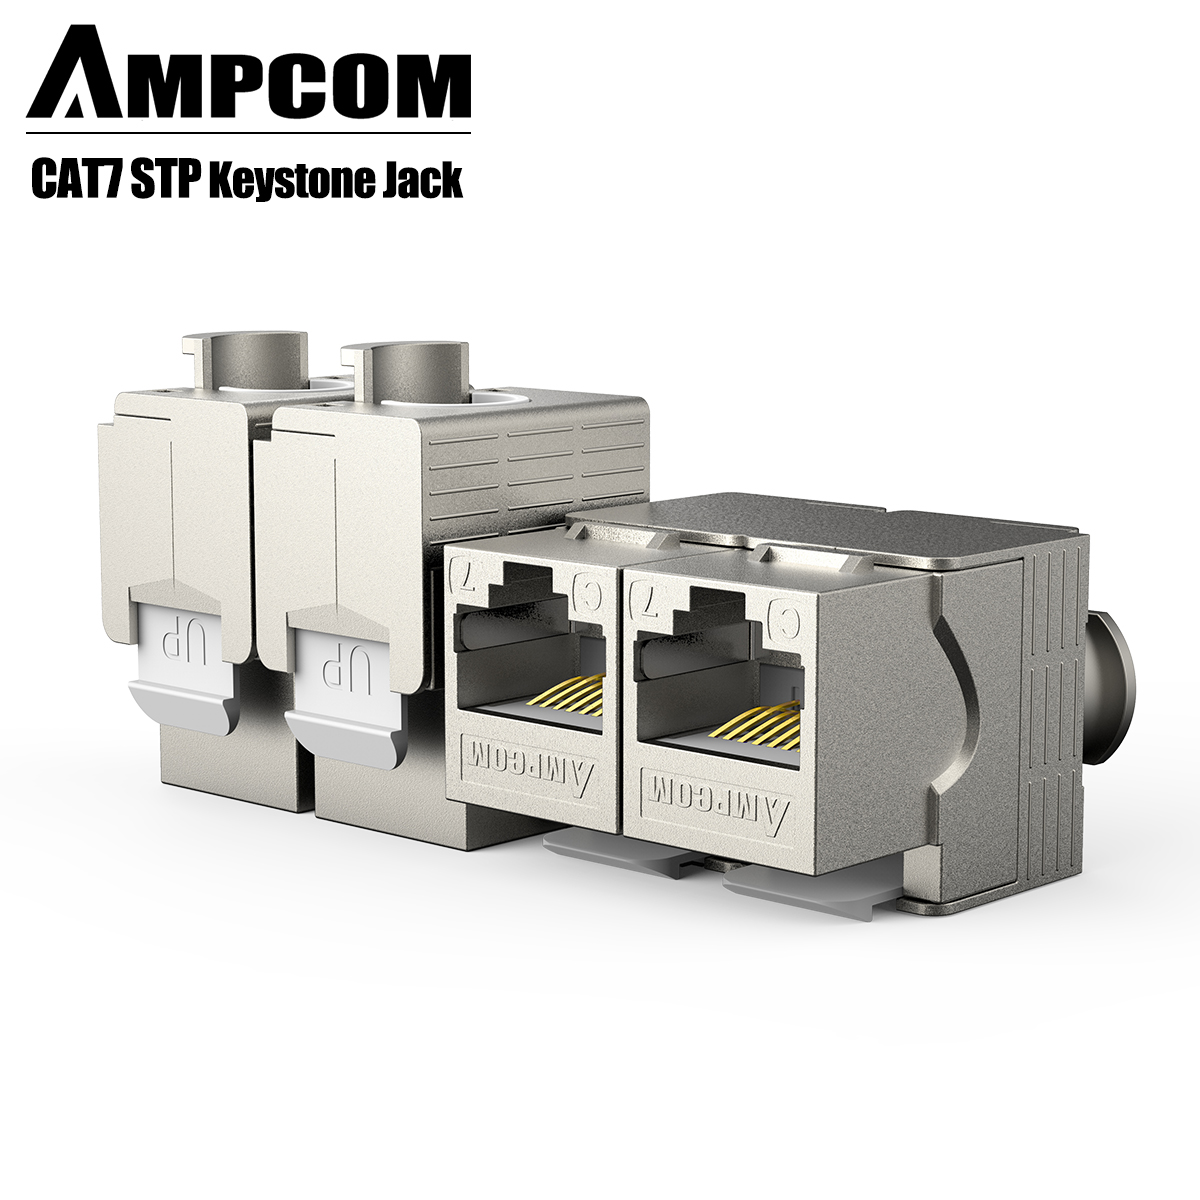 RJ45 CAT 7 Tool-Less STP Shielded Keystone Jack, AMPCOM Self-Locking Cat7 Keystone Zinc Alloy Module Adapter